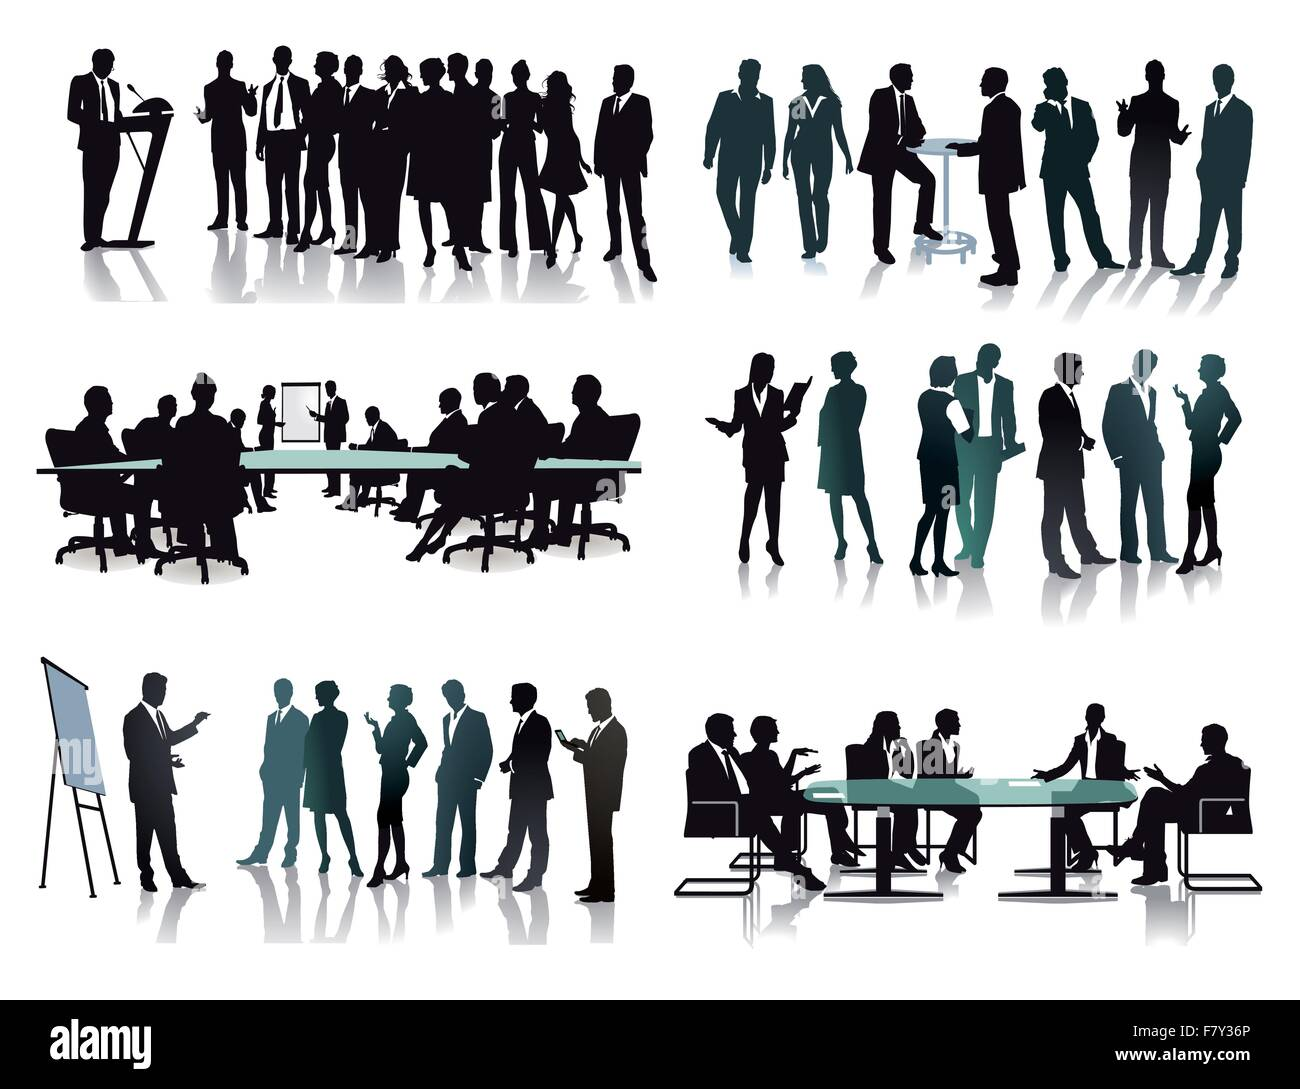 Business groups meetings - Stock Image